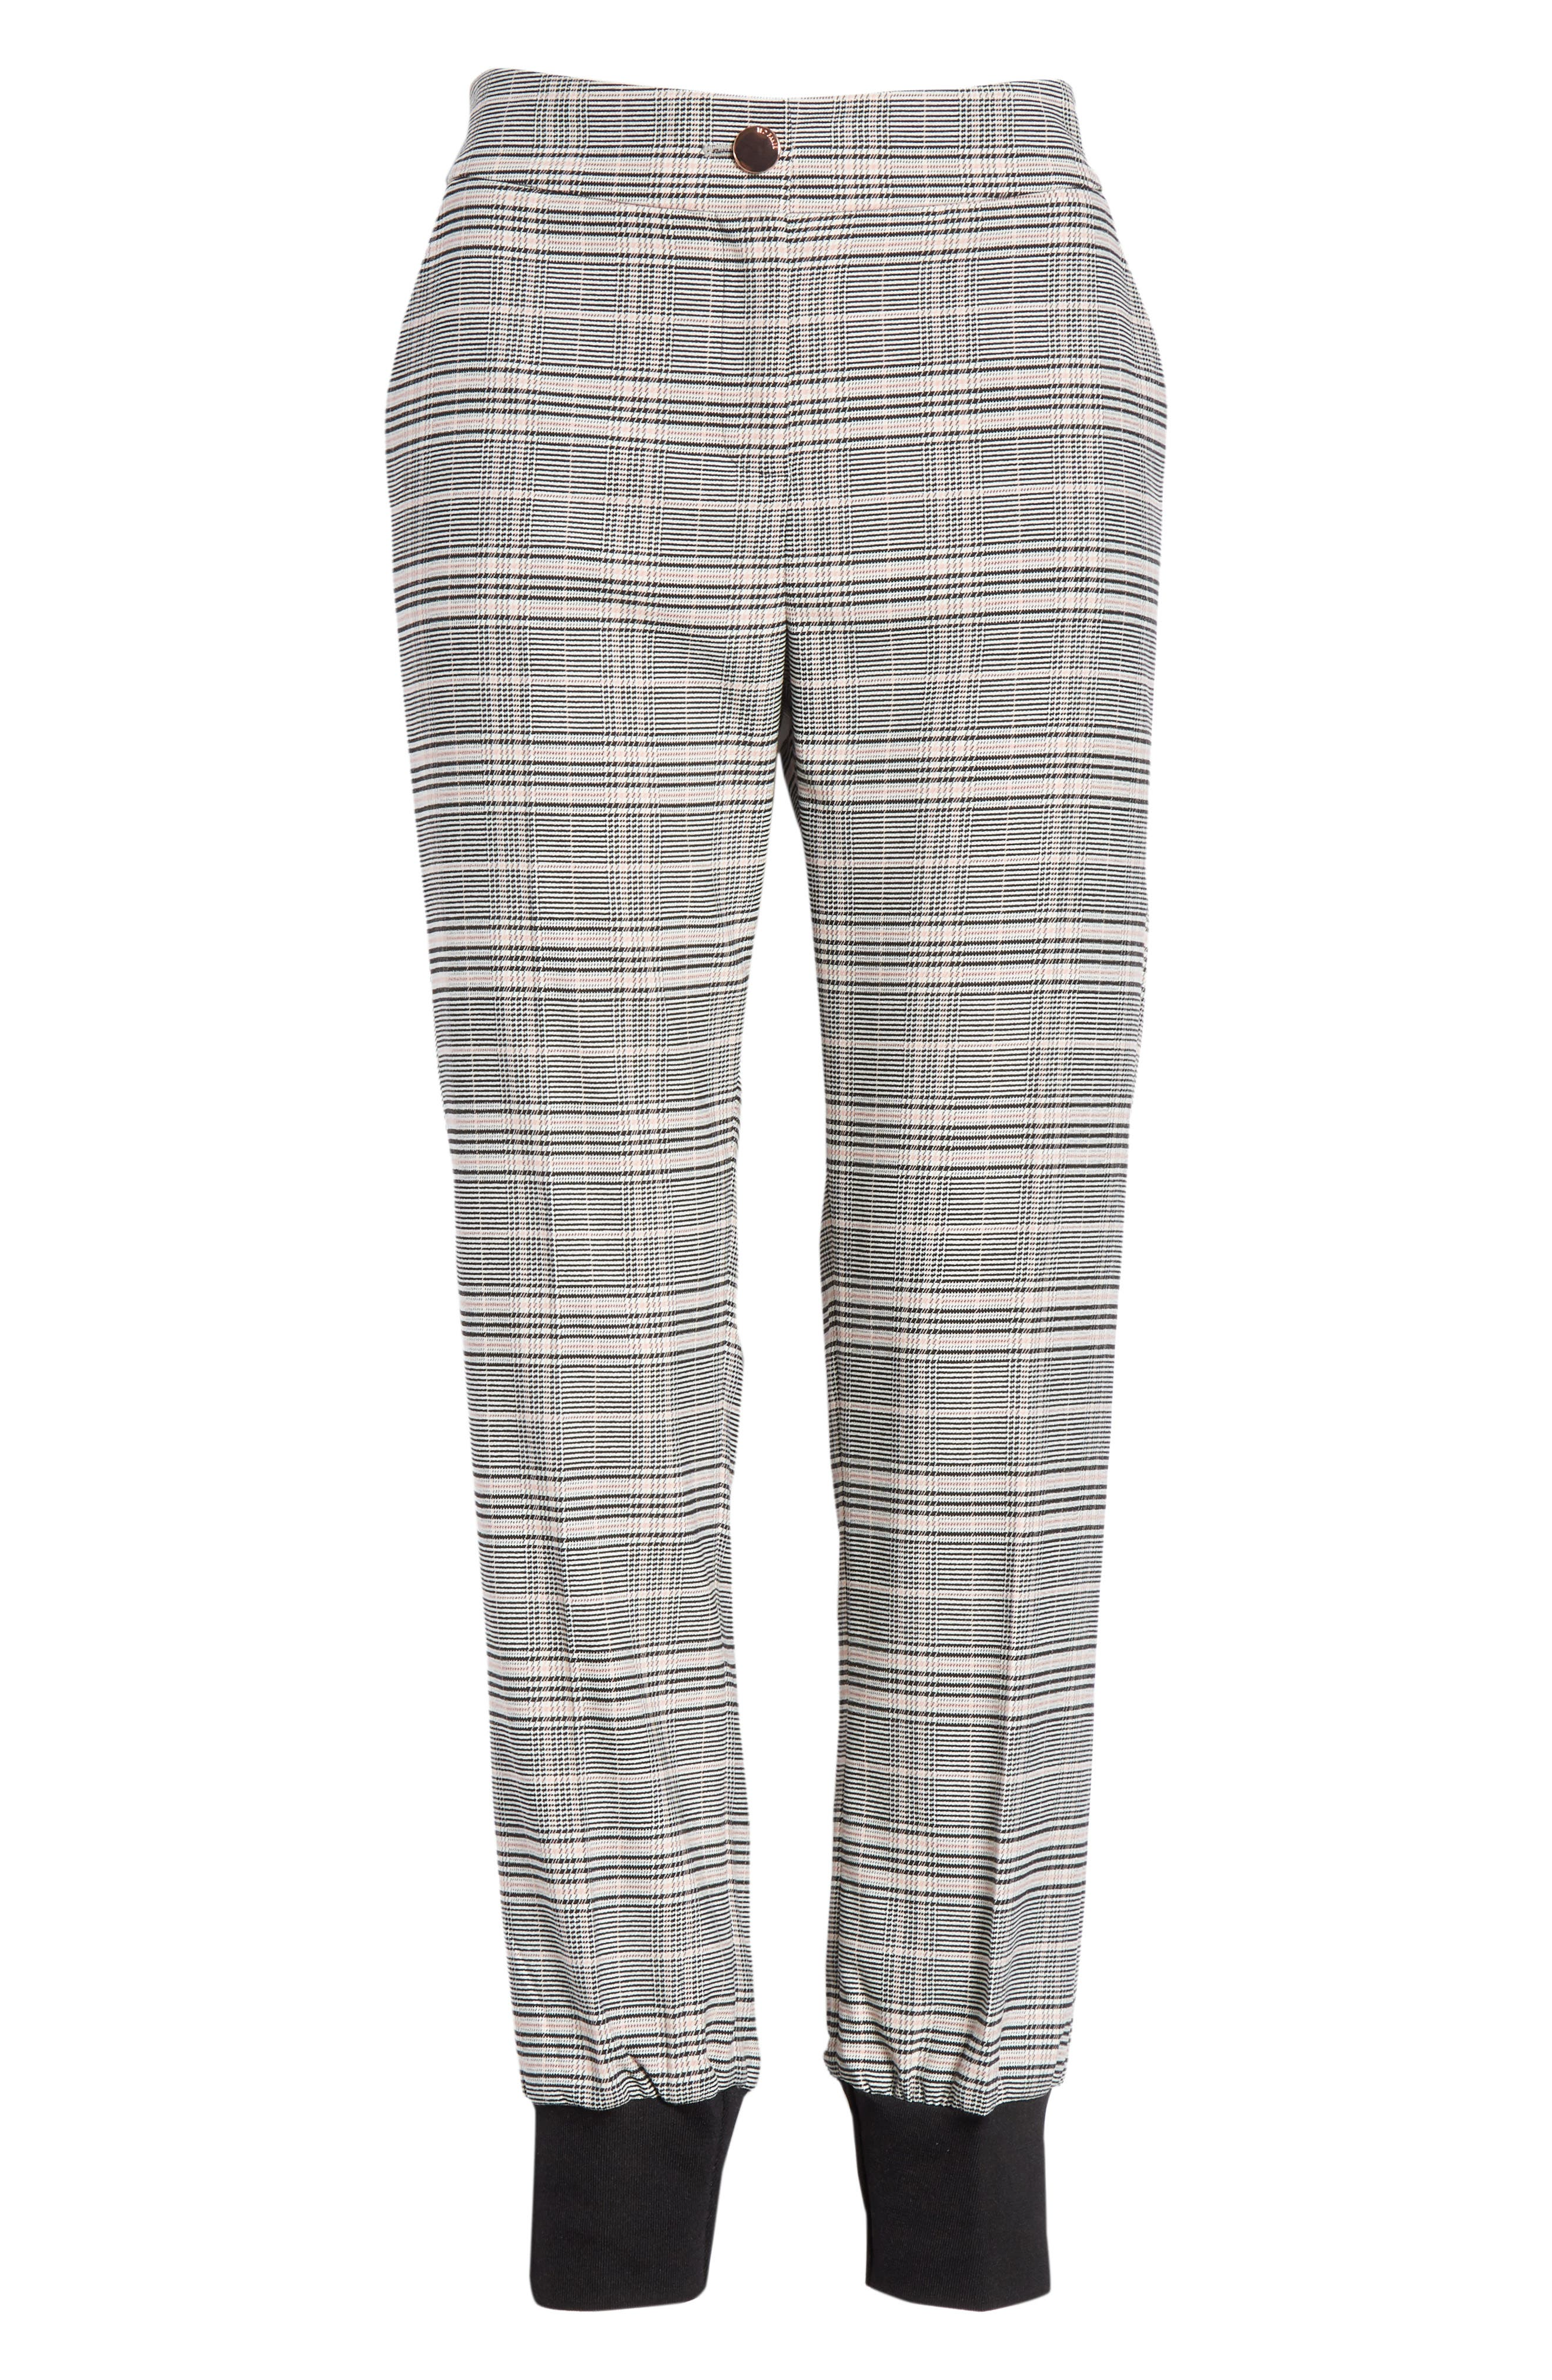 Ted Working Title Kimmt Check Plaid Trousers,                             Alternate thumbnail 6, color,                             GREY